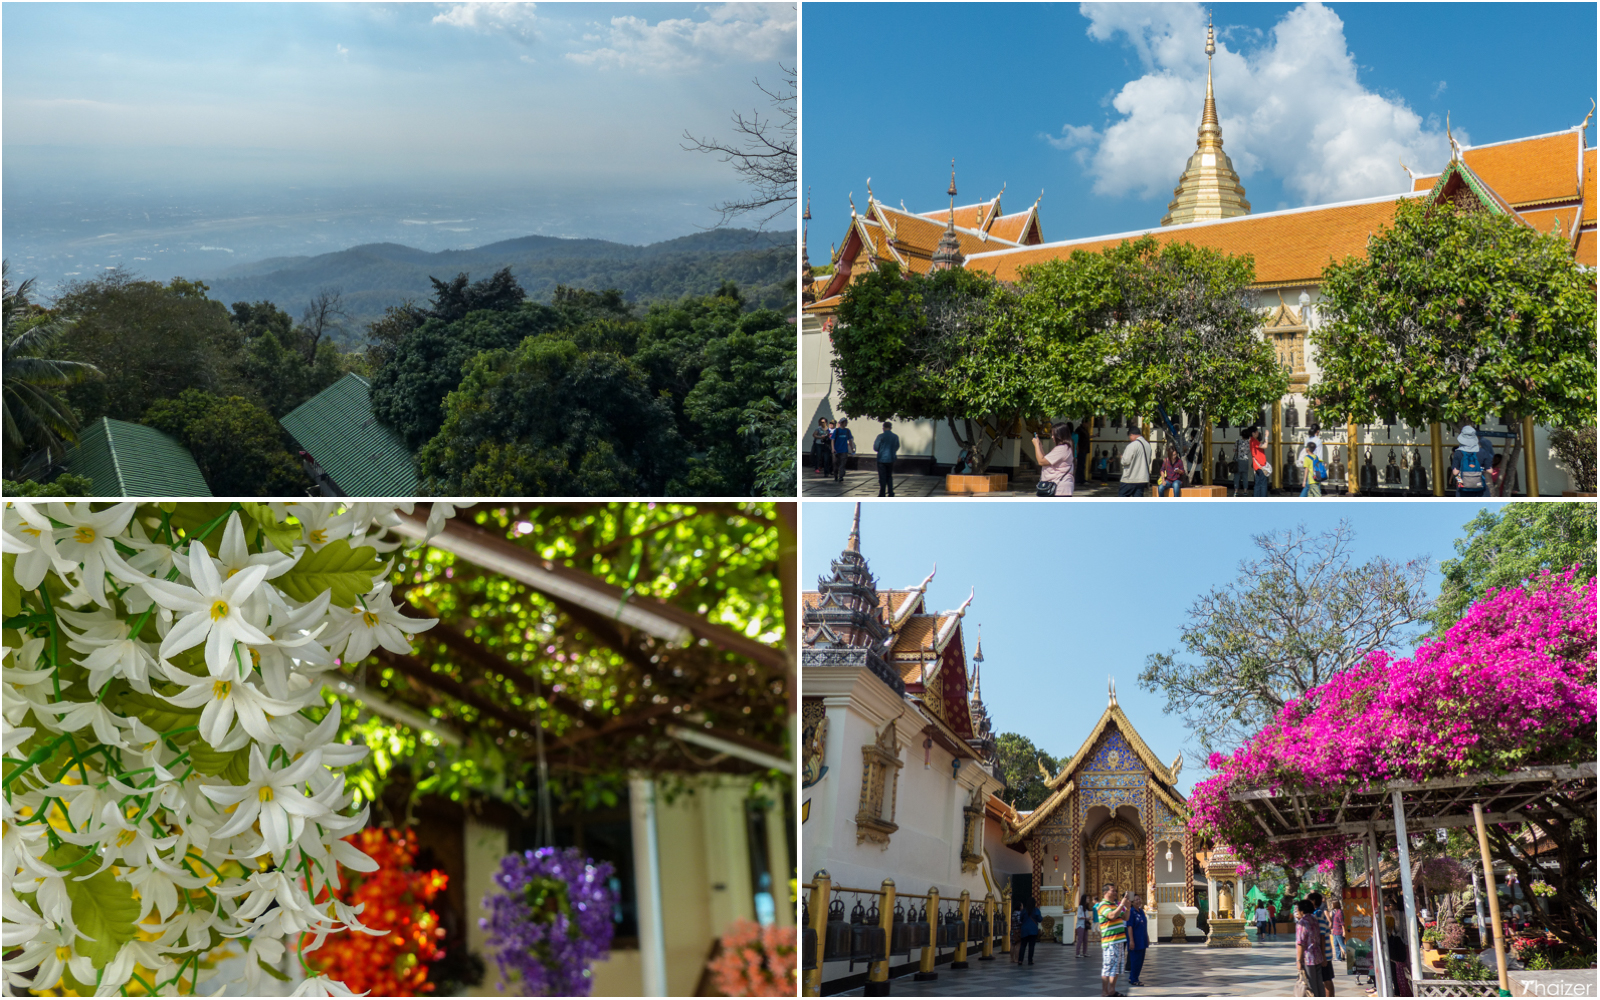 scenery at Doi Suthep